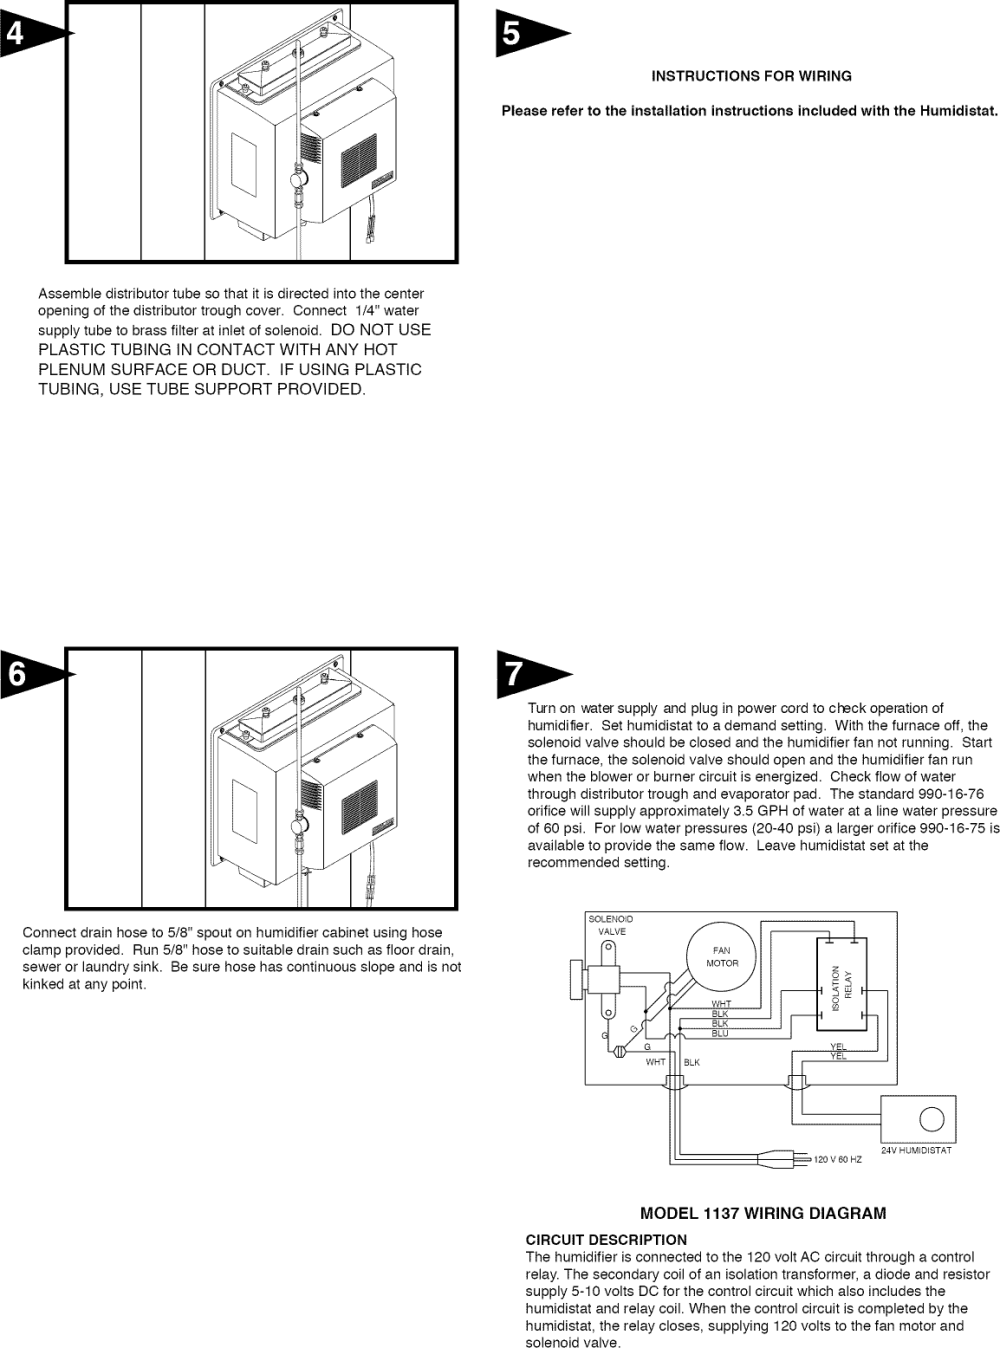 medium resolution of page 2 of 9 generalaire 1137 user manual humidifier manuals and guides l1002554